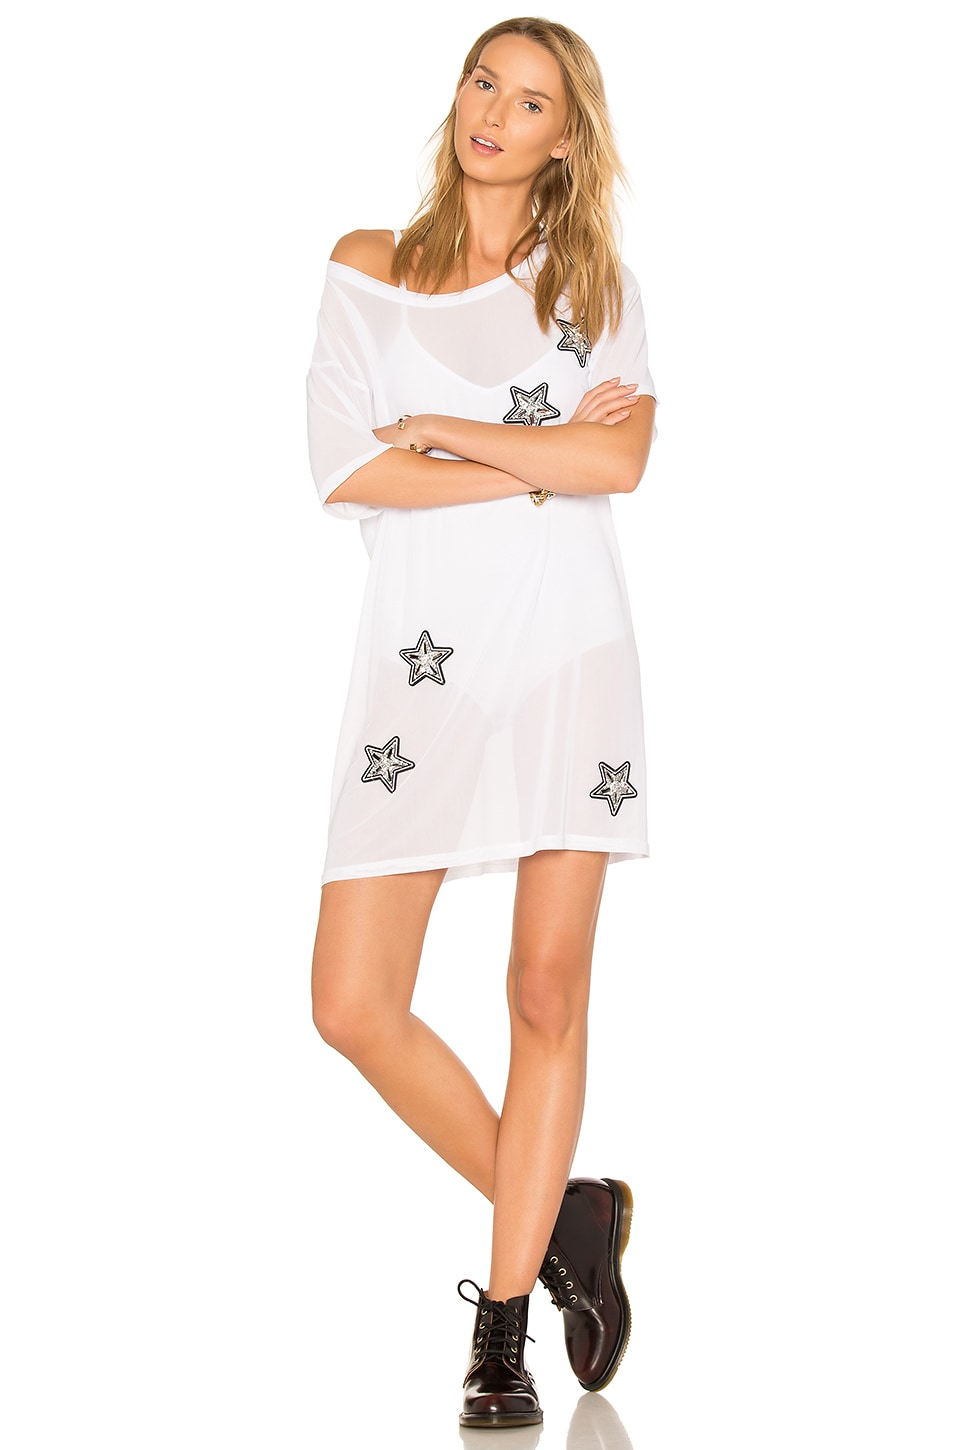 X REVOLVE Stars & Mesh Tee Dress by Minkpink